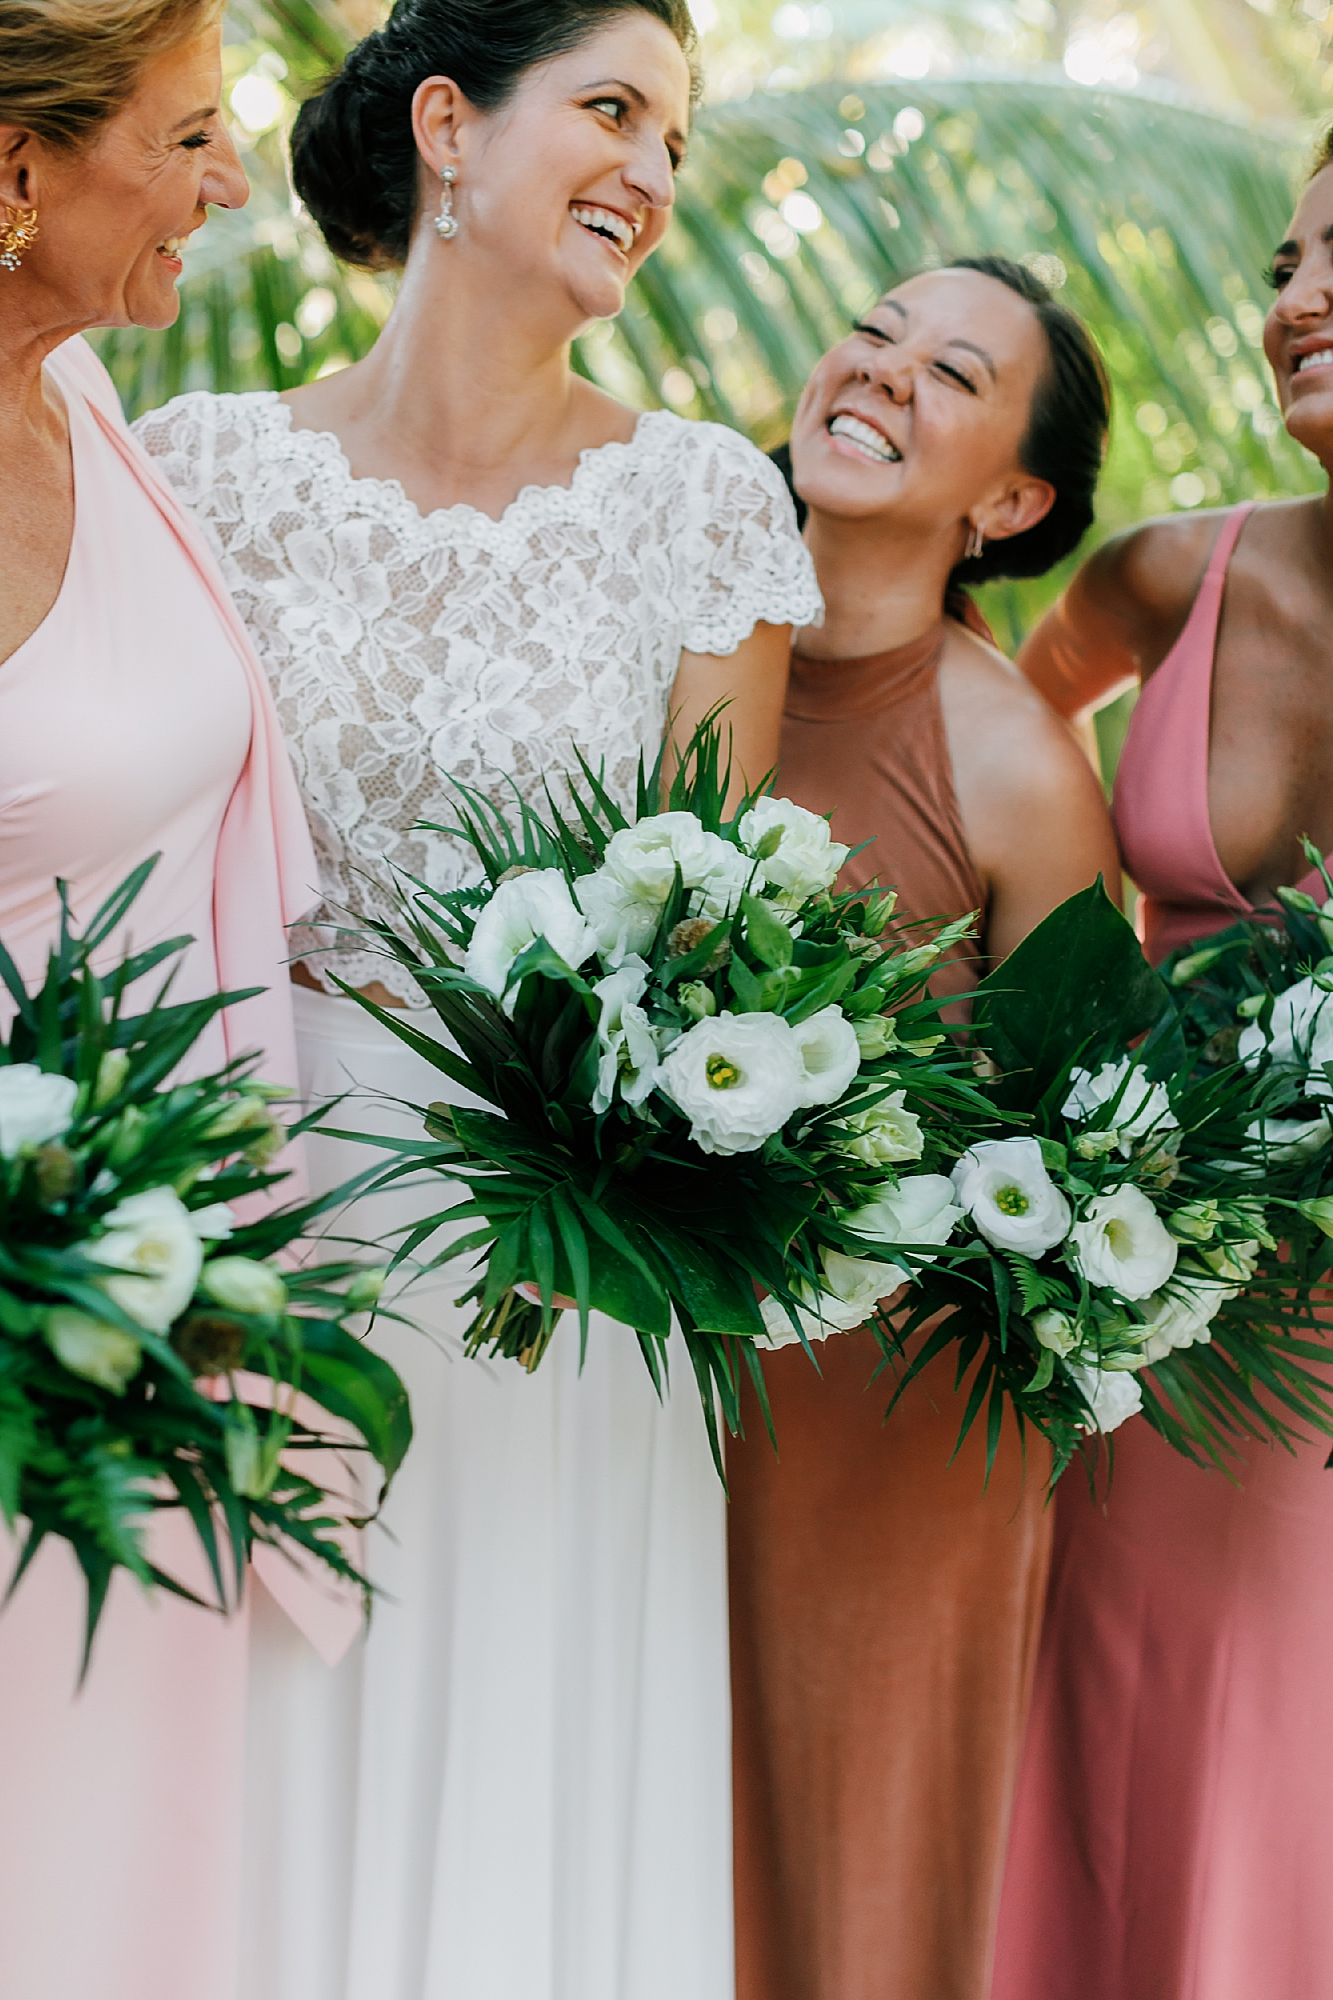 Stylish and Candid Destination Film Wedding Photography in Tulum Mexico by Magdalena Studios 0016